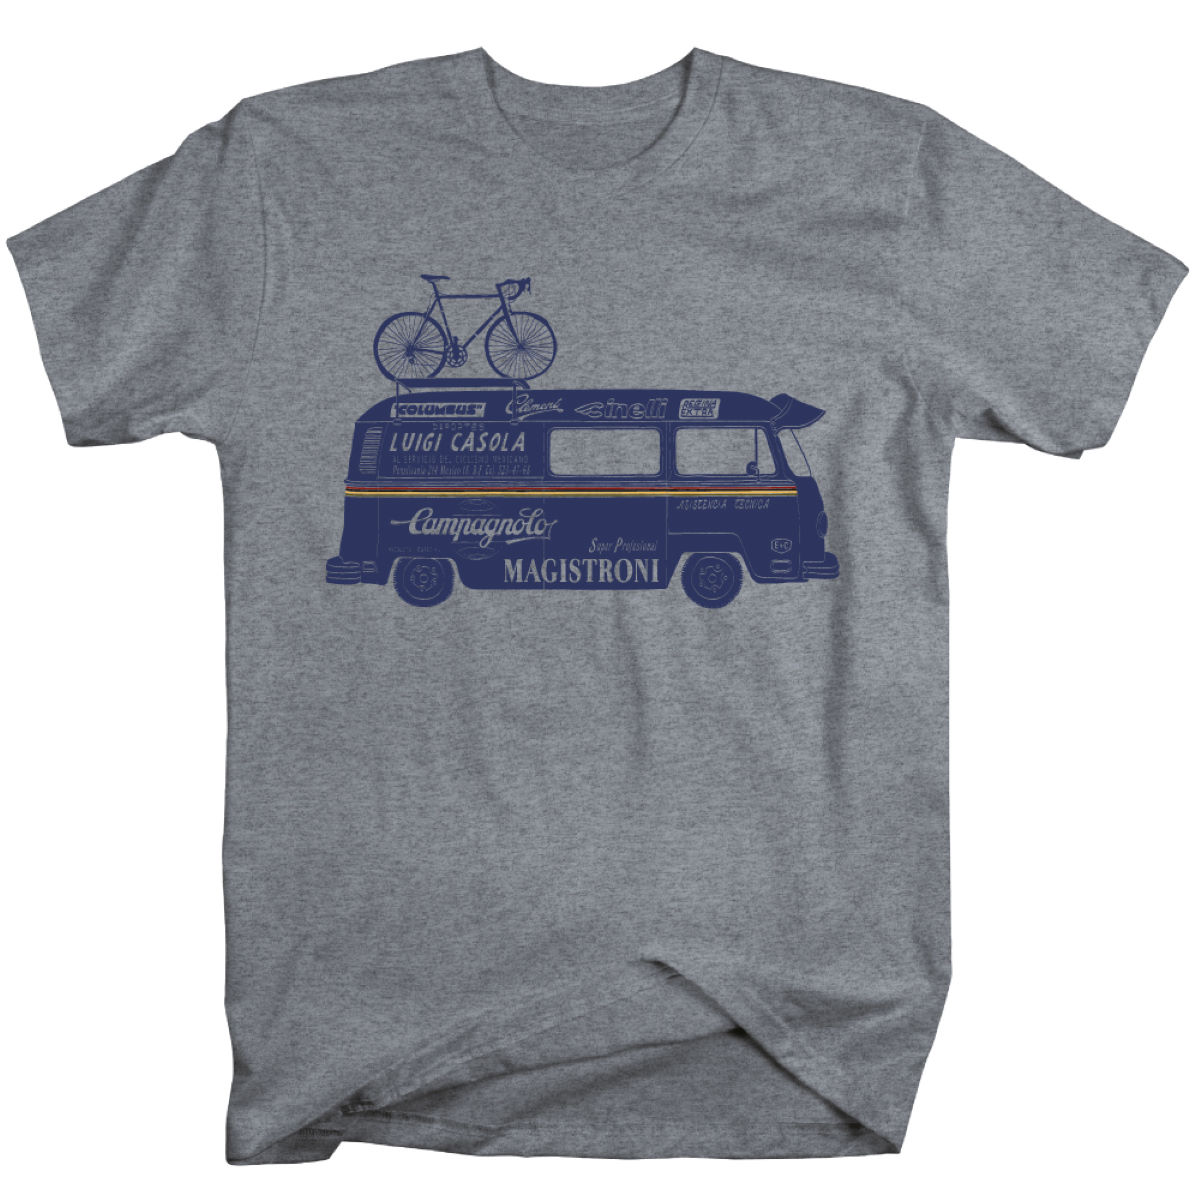 T-shirt Endurance Conspiracy Campy Van - L Heather Grey T-shirts